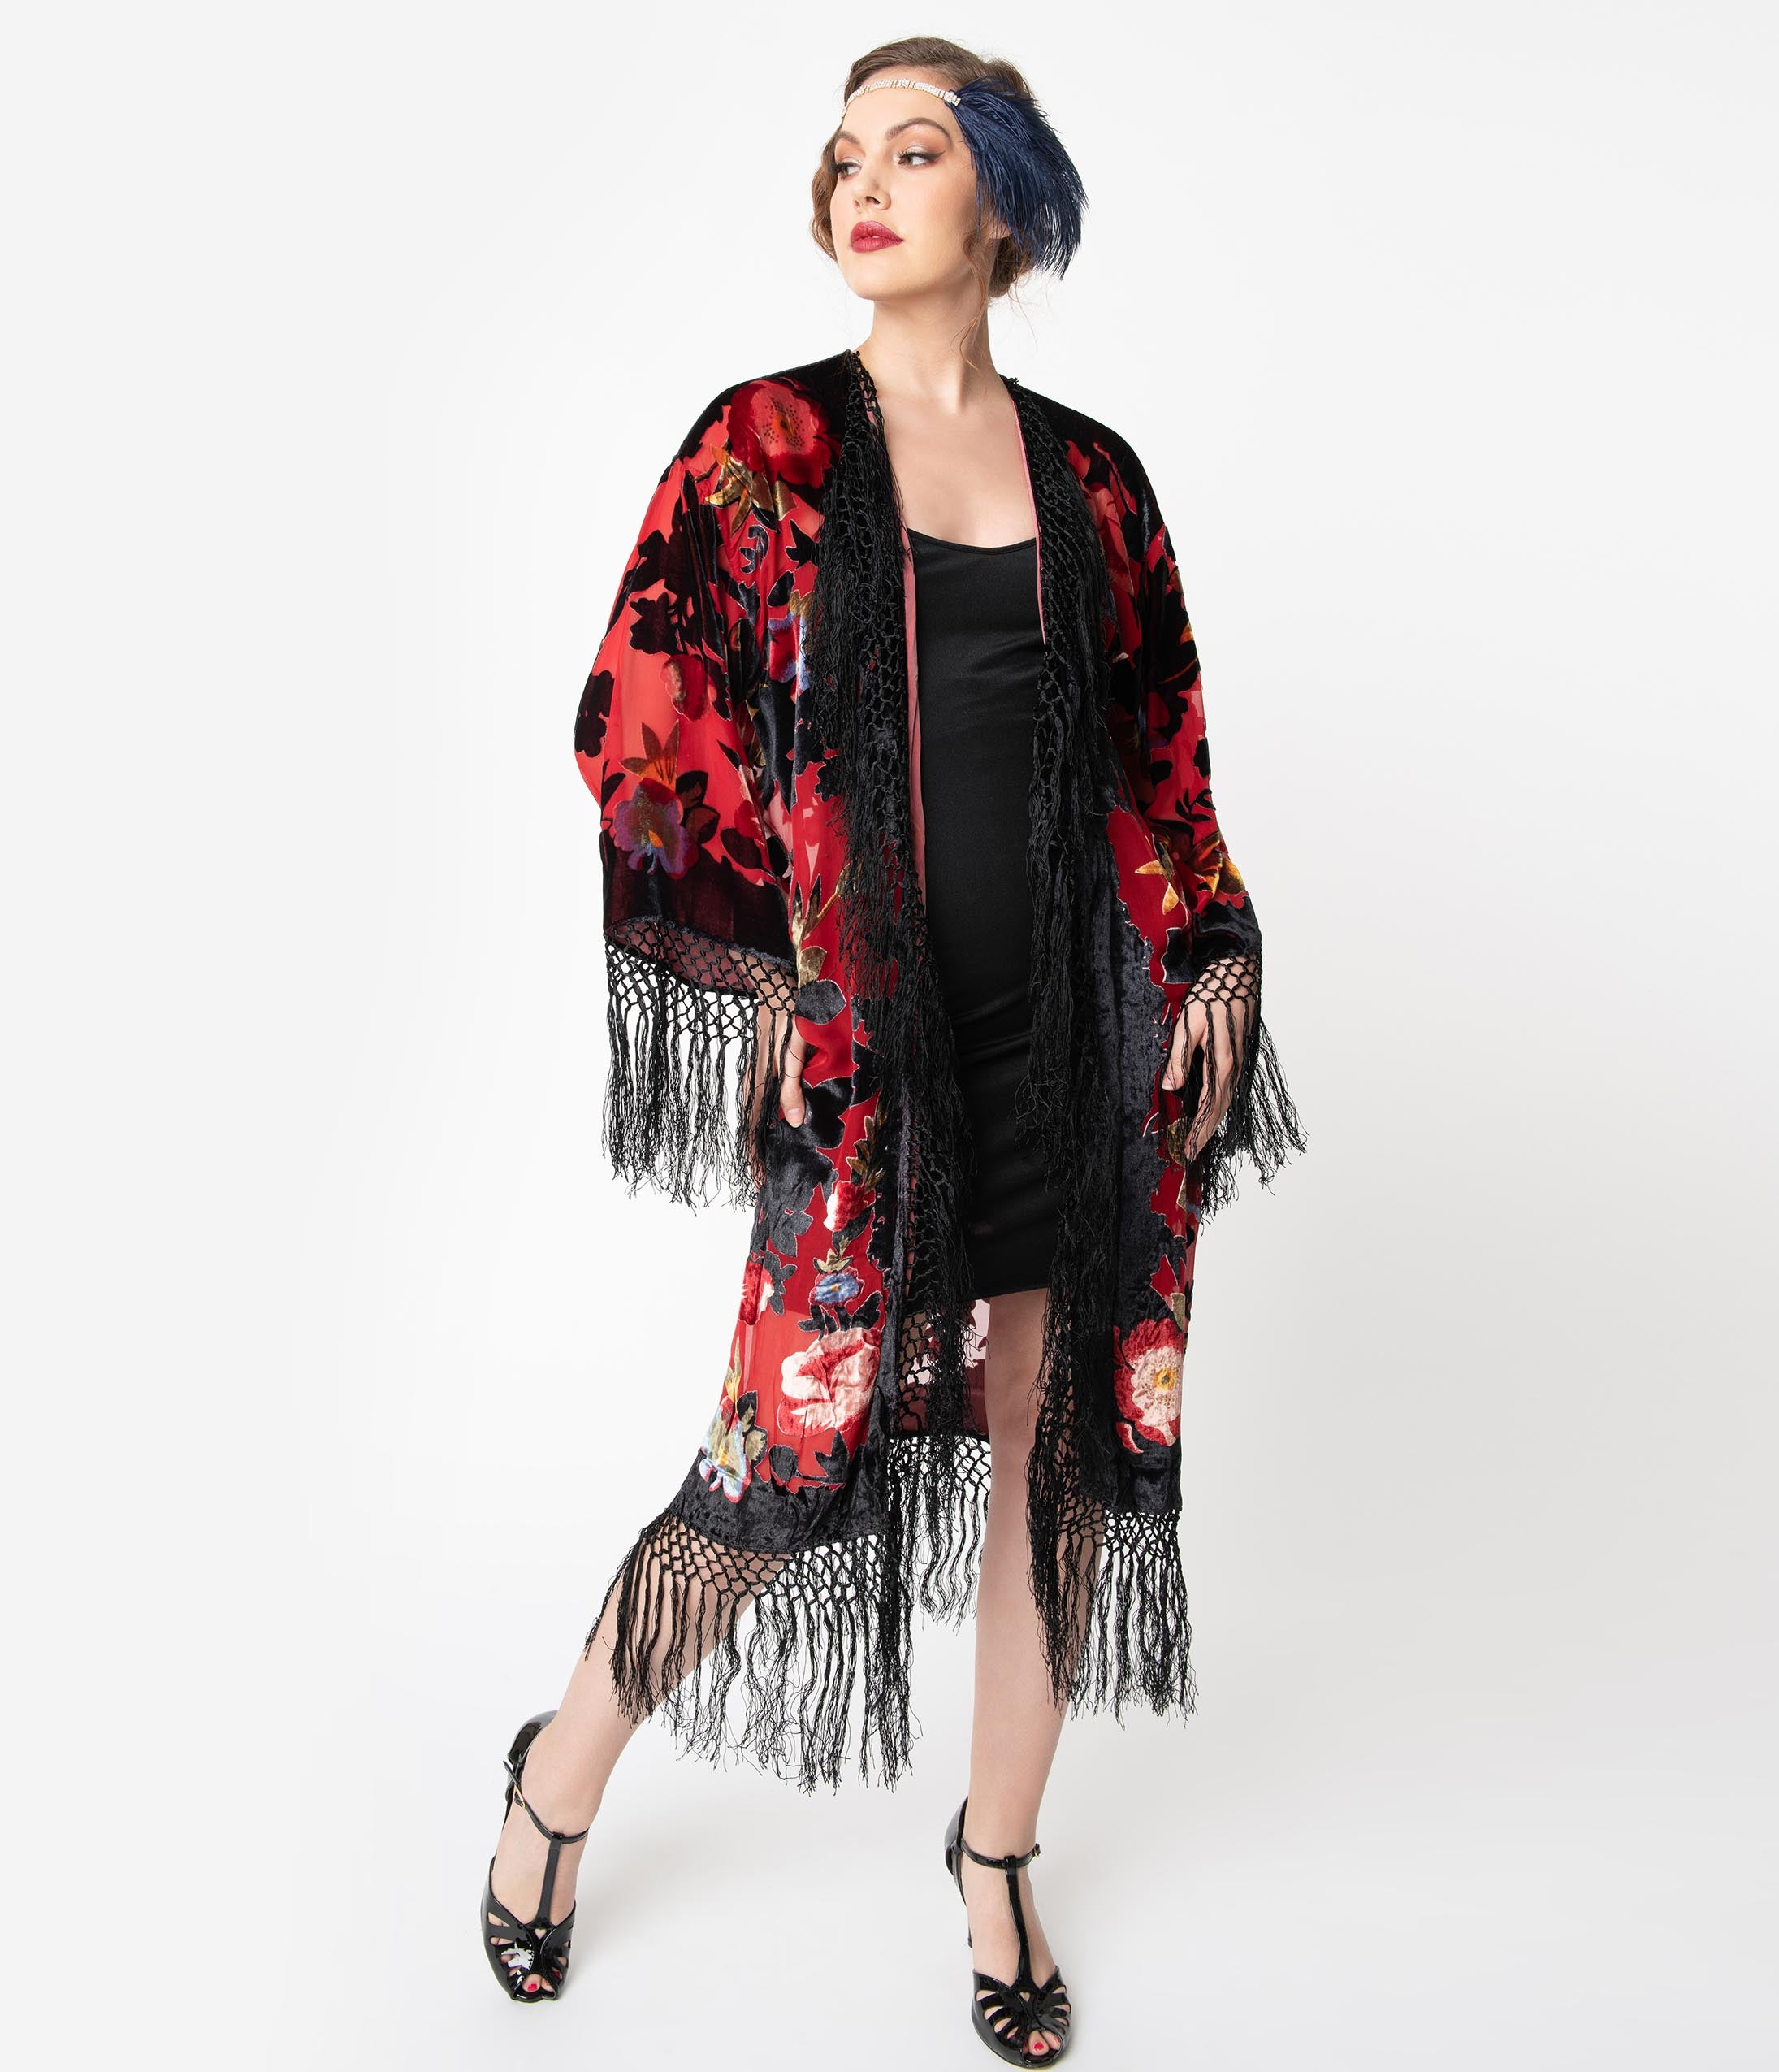 Vintage Coats & Jackets | Retro Coats and Jackets 1920S Style Red  Black Floral Devore Velvet Fringe Flapper Coat $194.00 AT vintagedancer.com